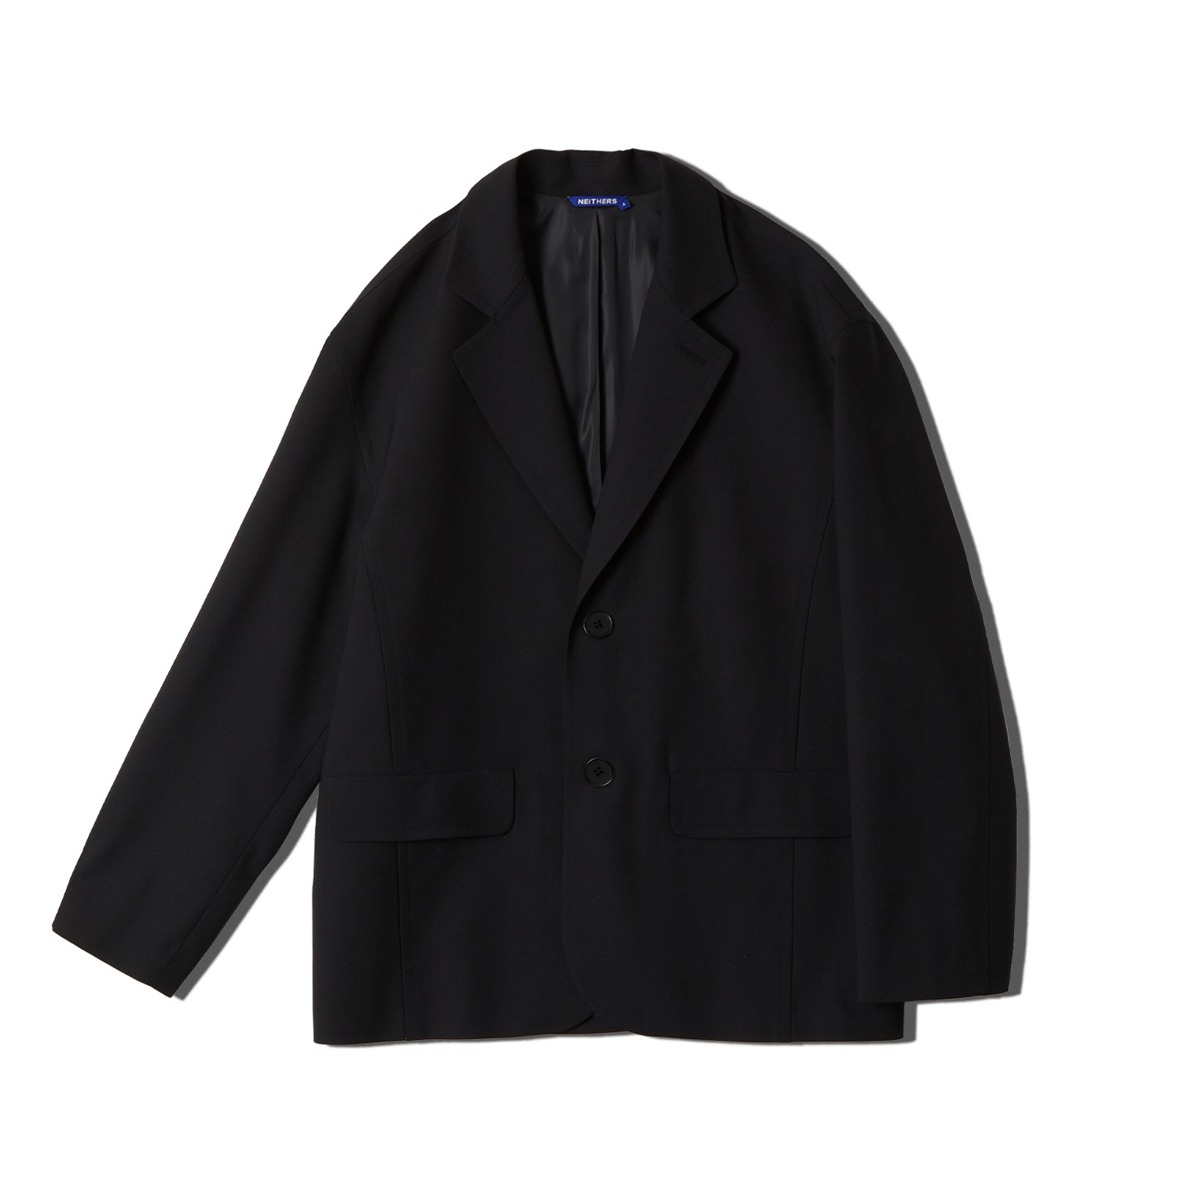 [NEITHERS] WOOL OVERSIZED 2B JACKET 'NAVY'